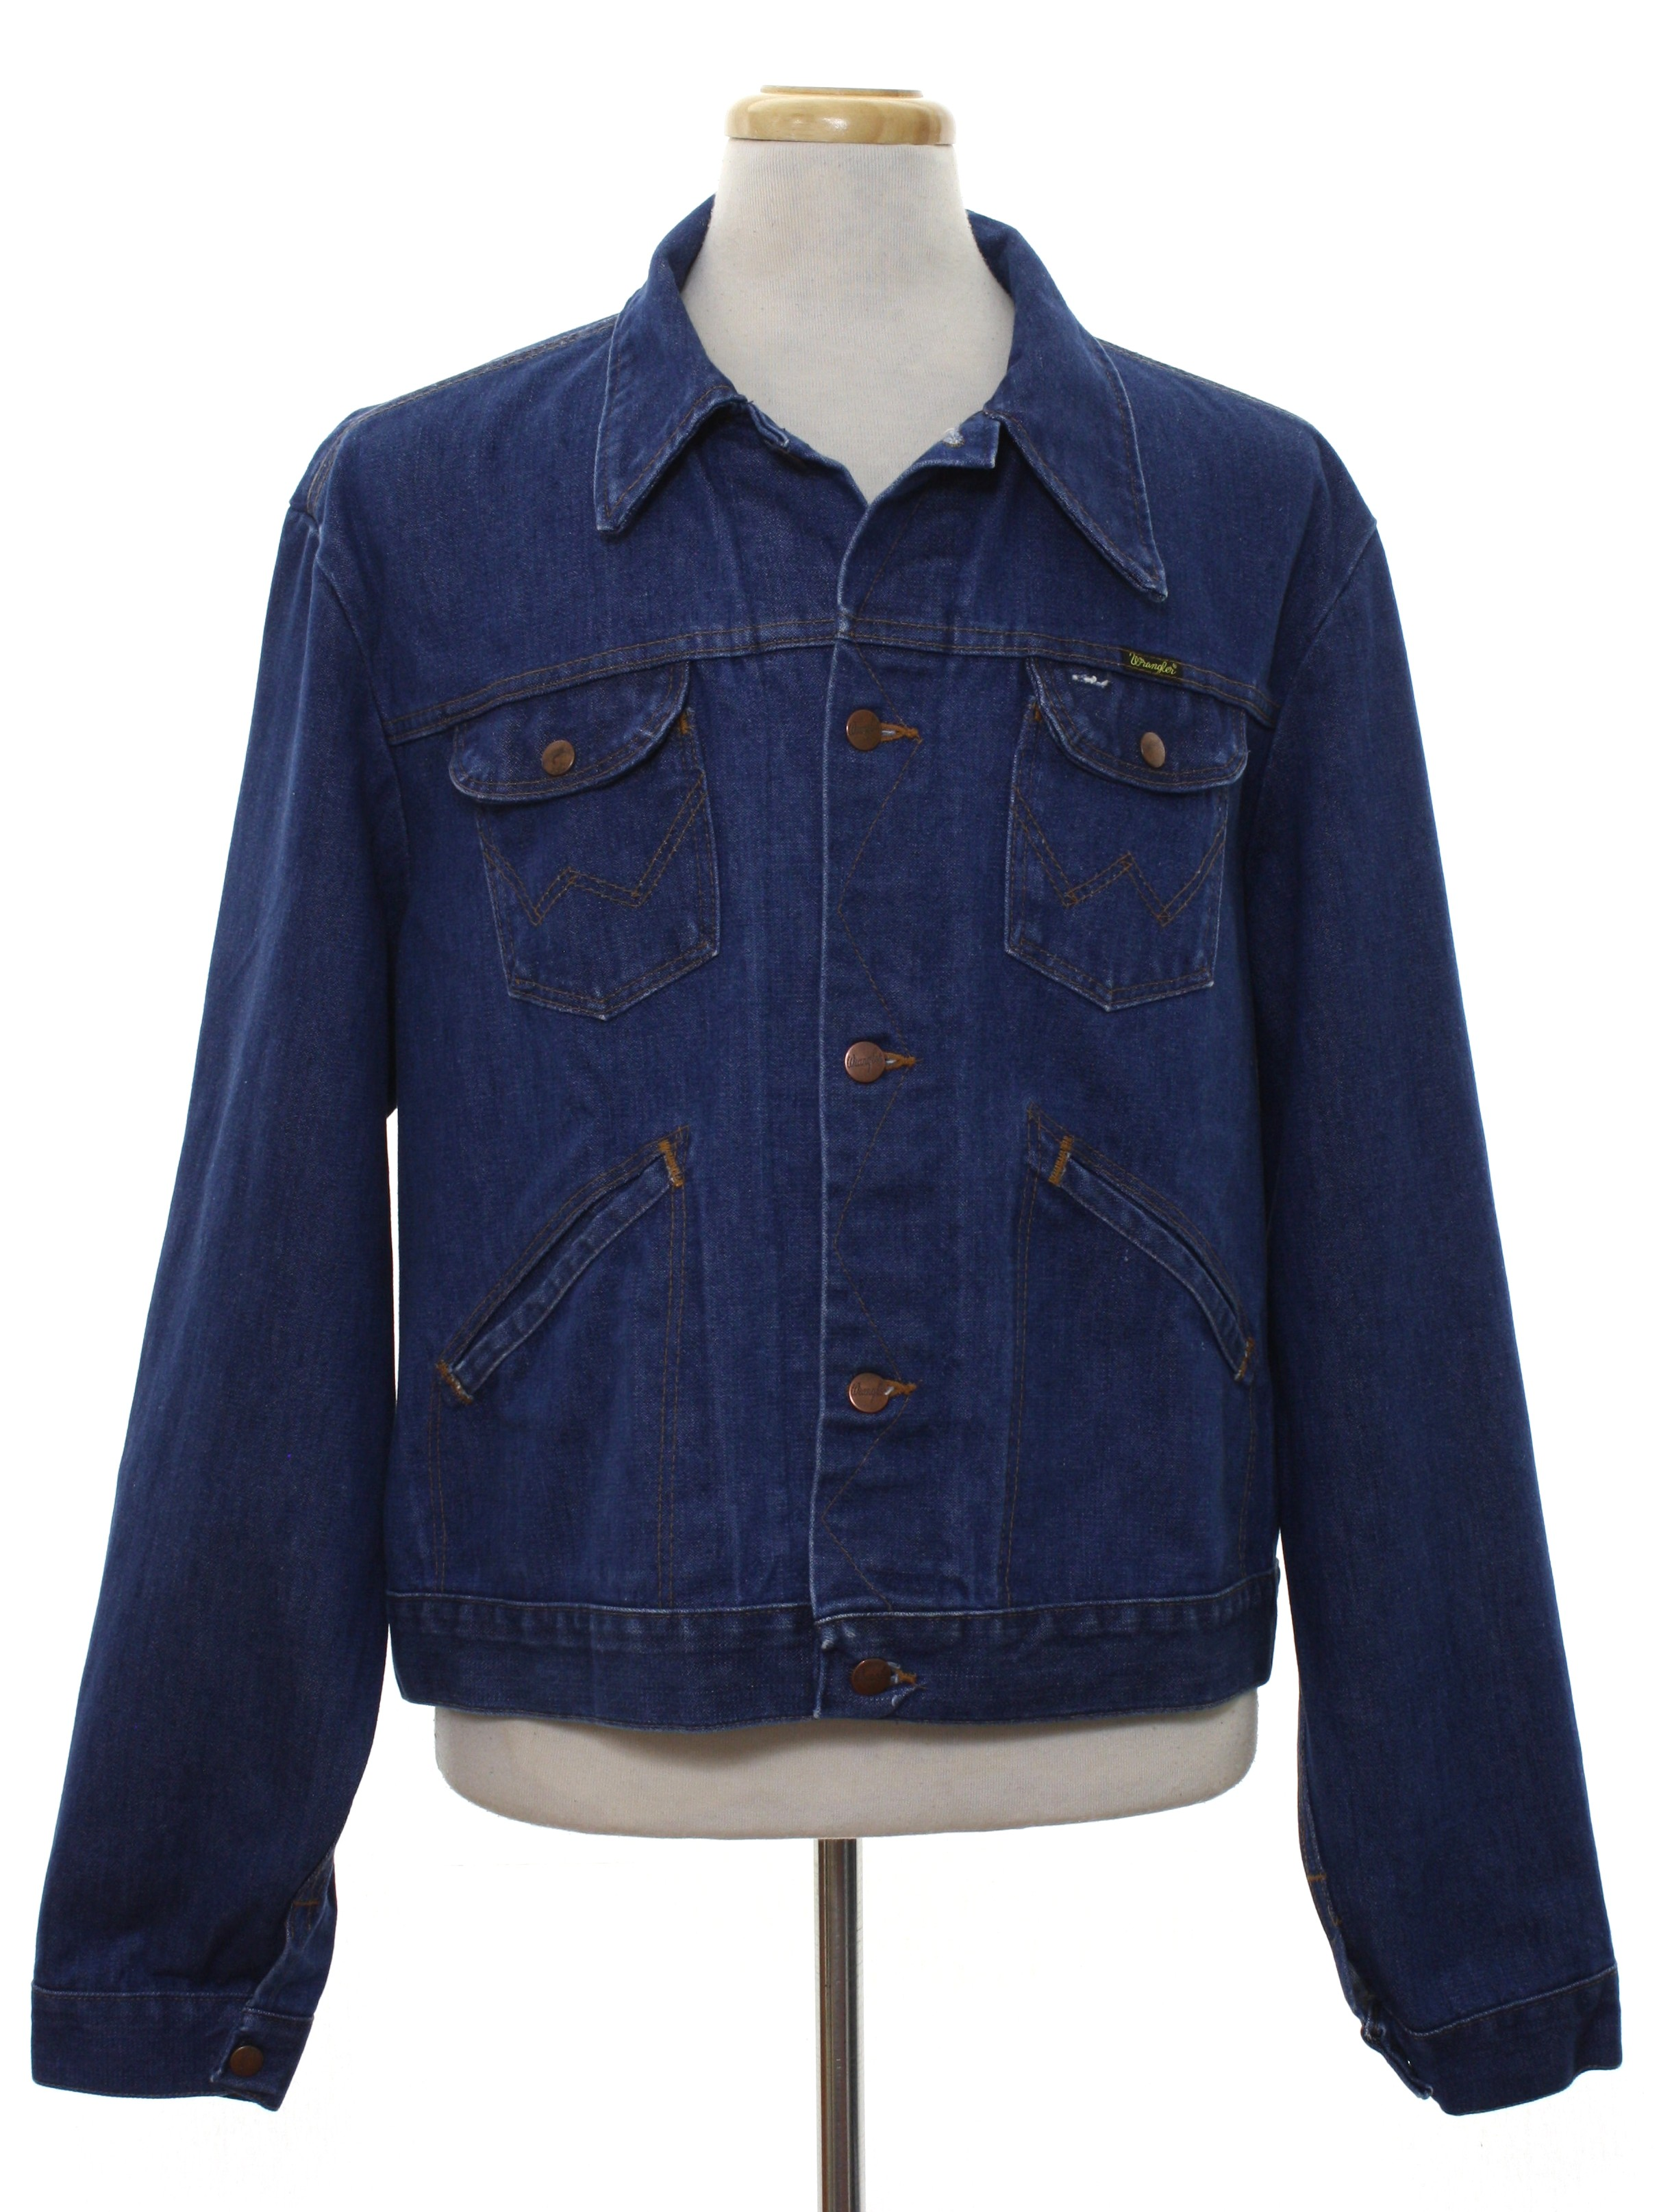 f33c05cf67 Vintage Wrangler Seventies Jacket  Late 70s or Early 80s -Wrangler ...